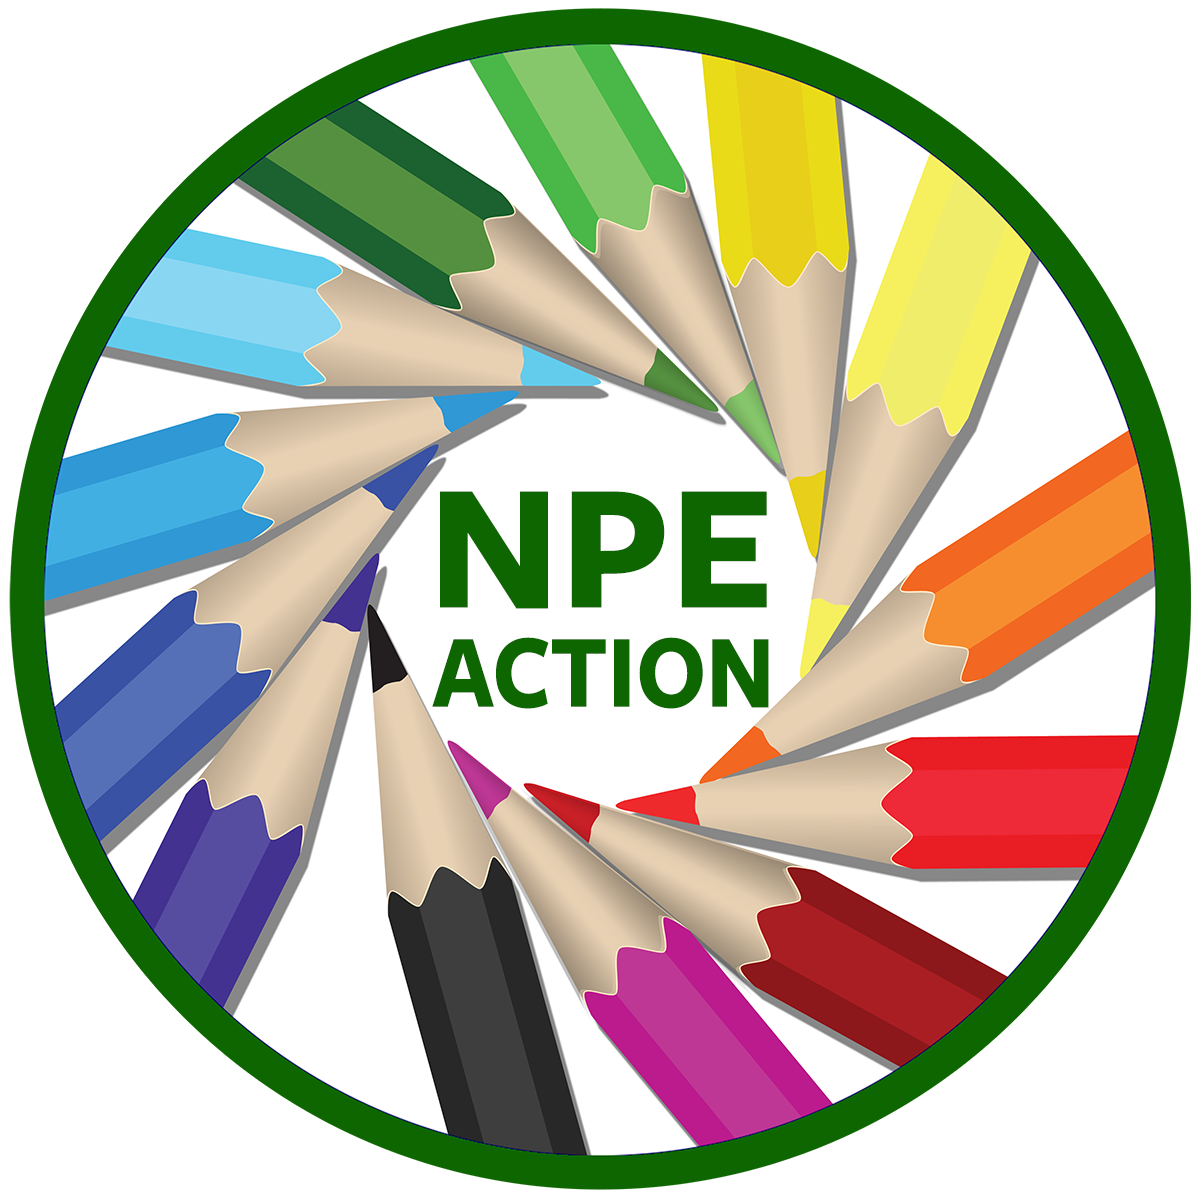 About npe action . Conference clipart school administrator